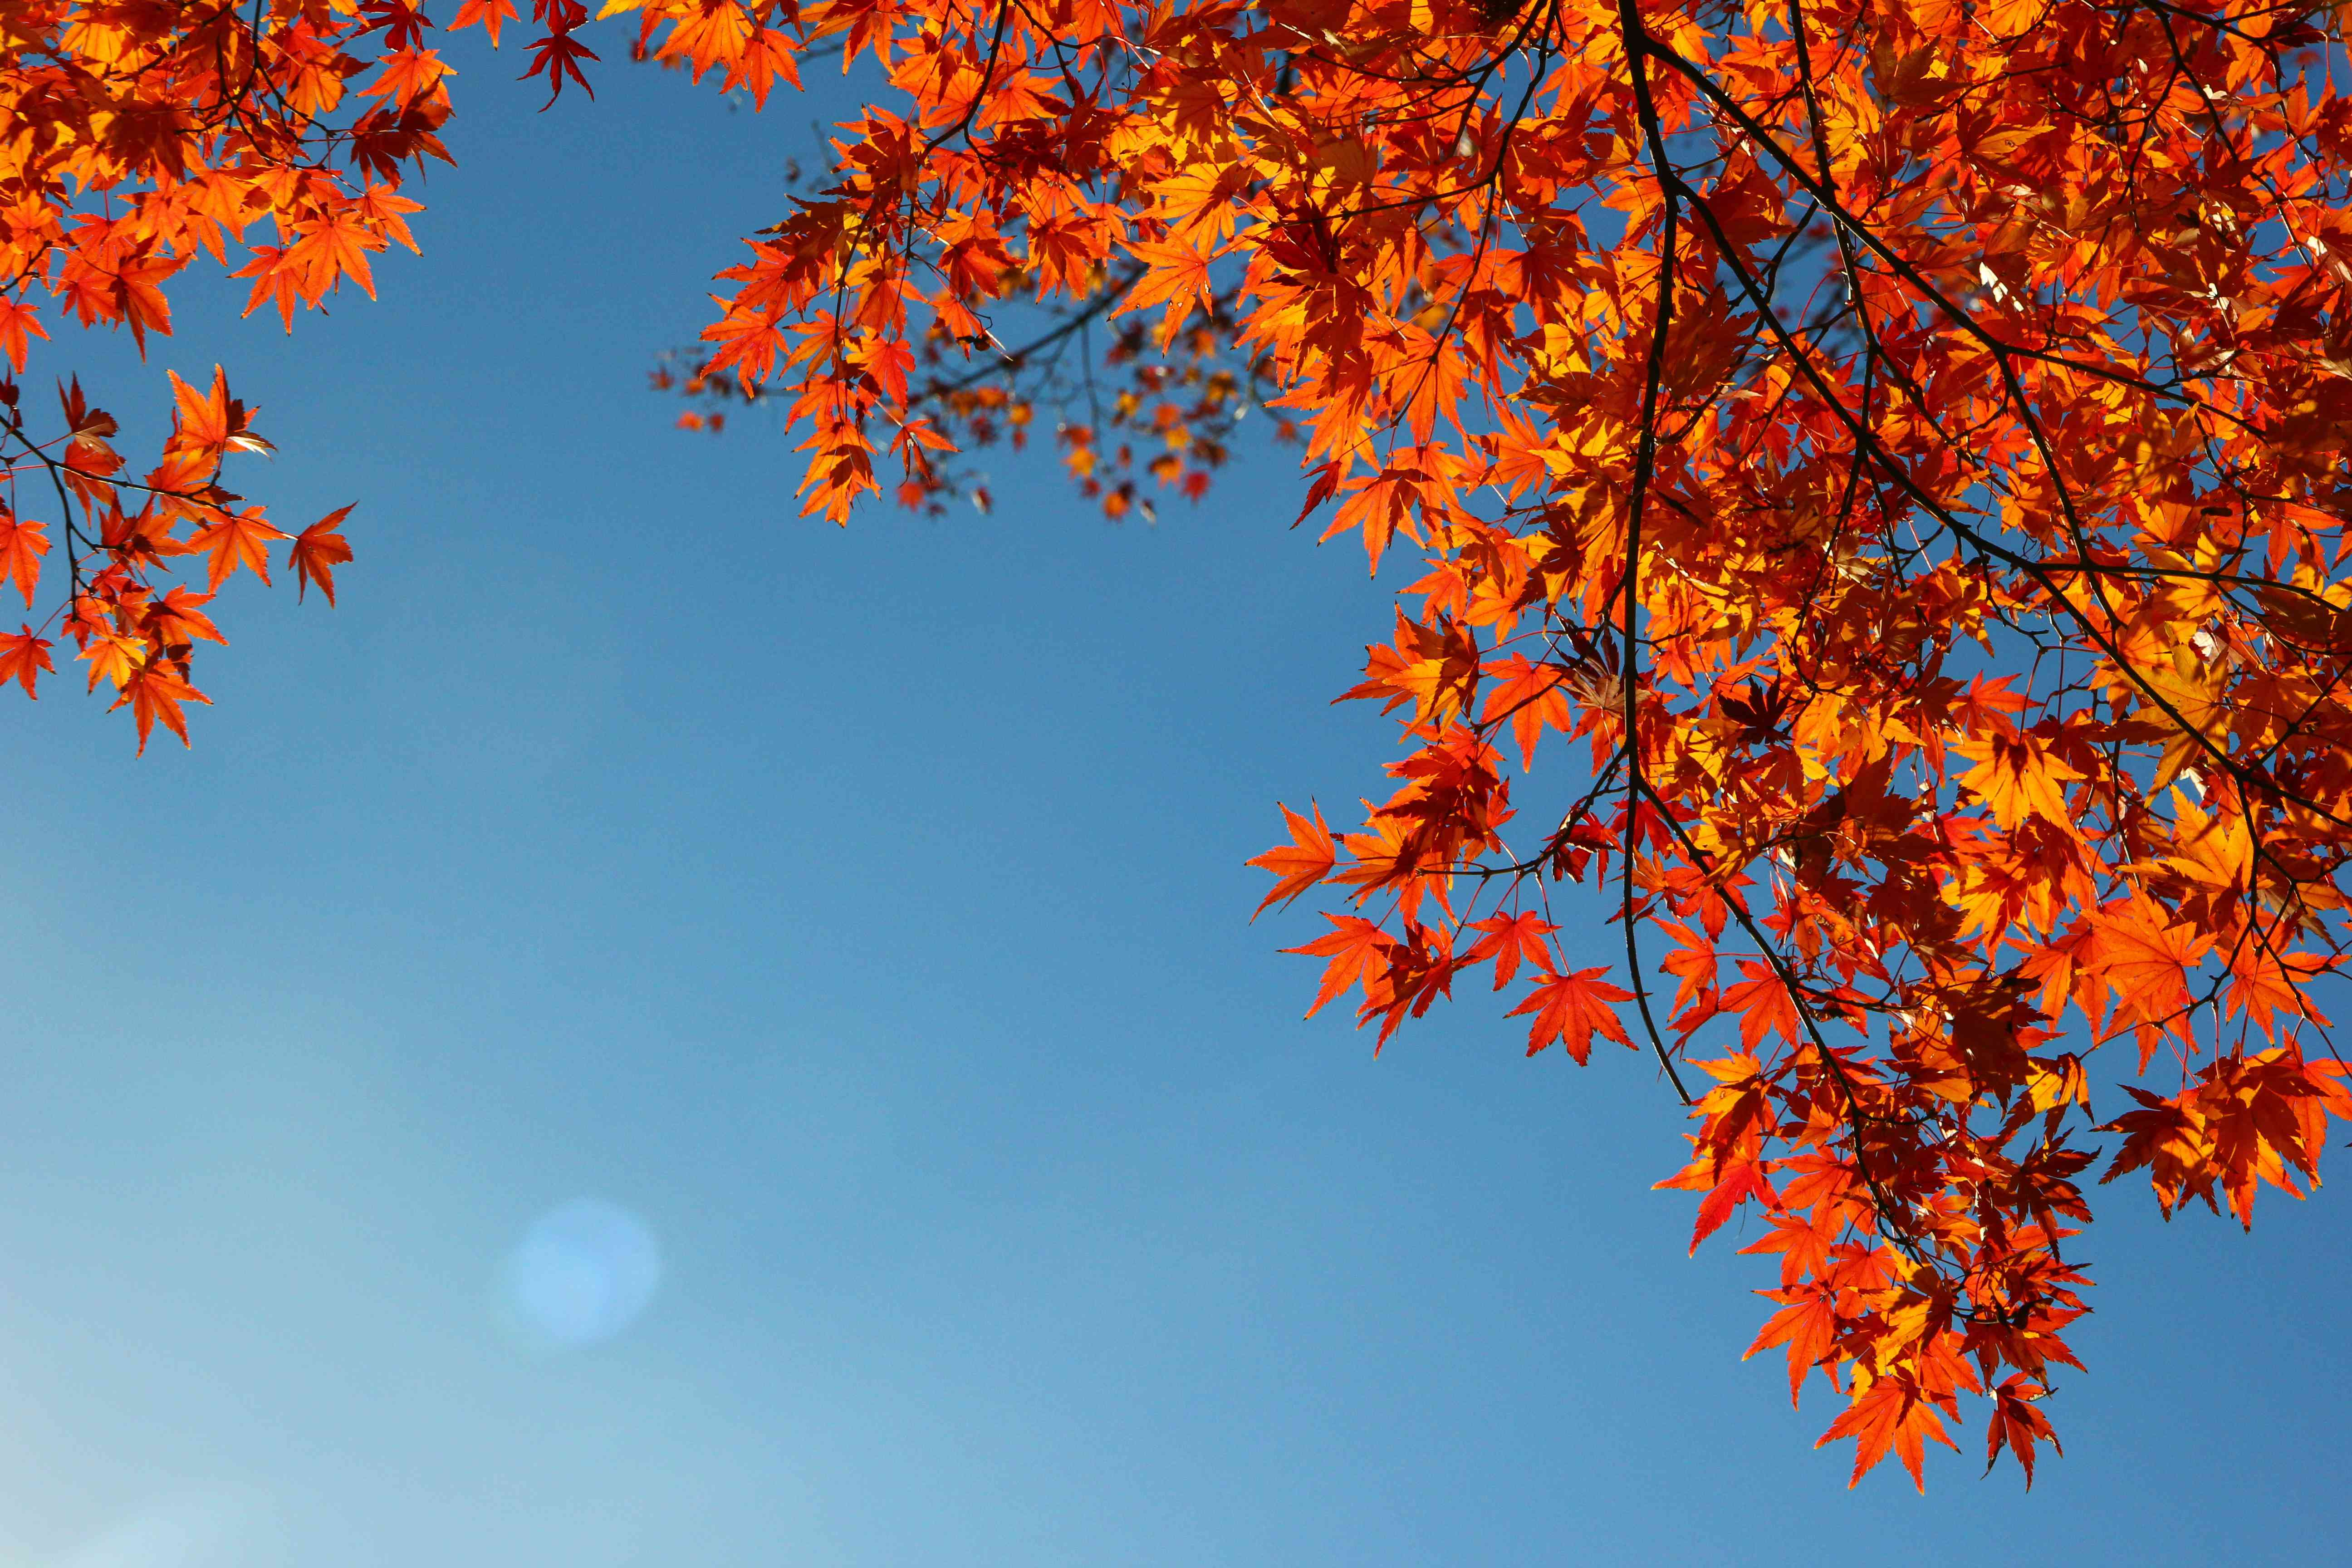 orange-red autumn leaves on tree silhouetted against brilliant blue sky